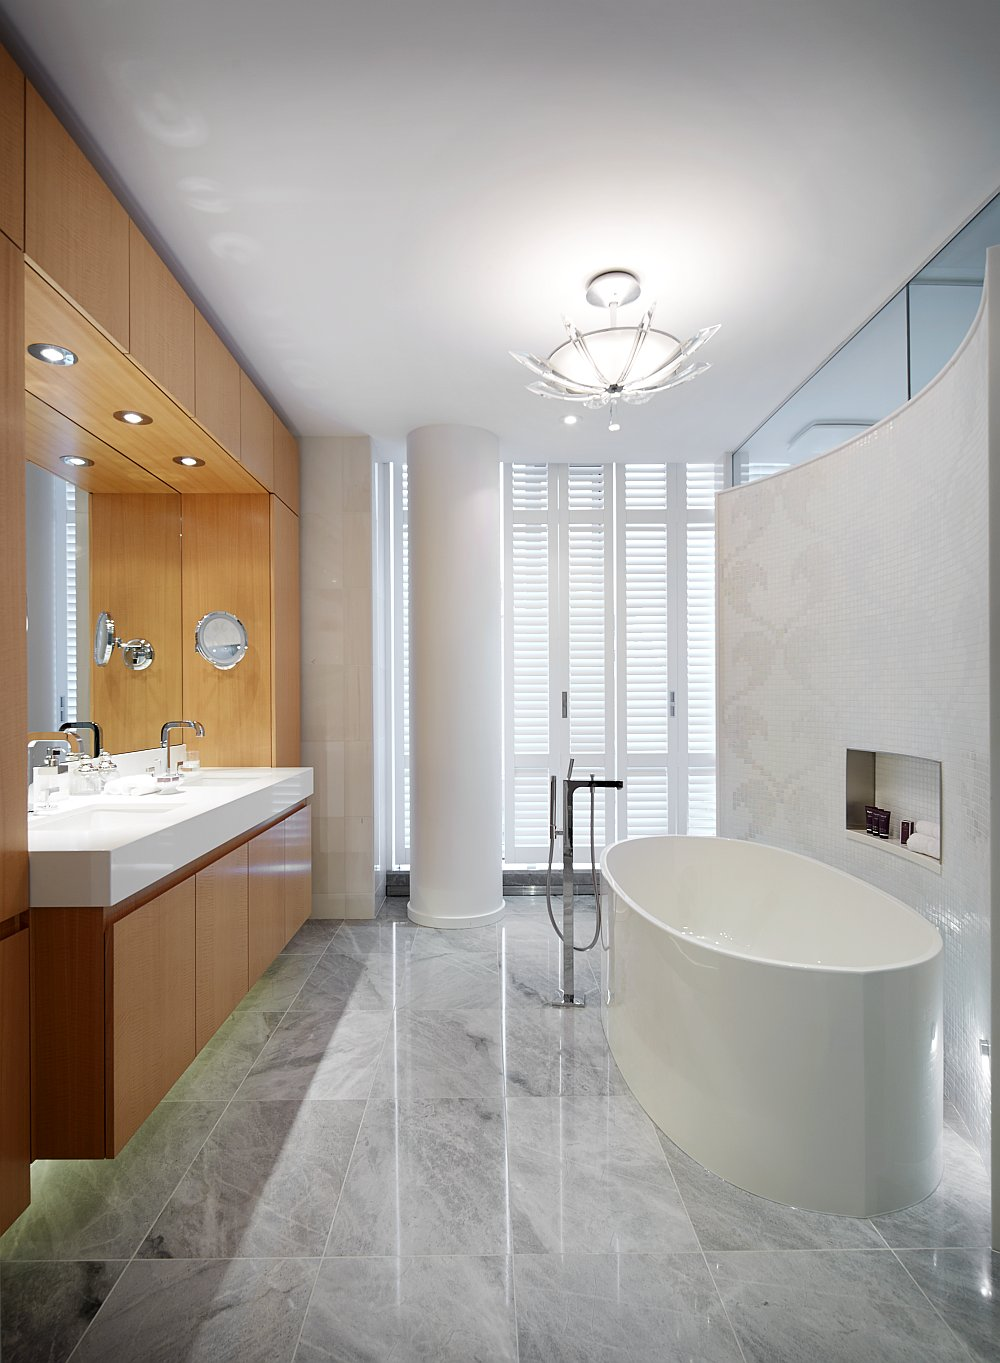 Spa-like bathroom of the condominium oozes opulence